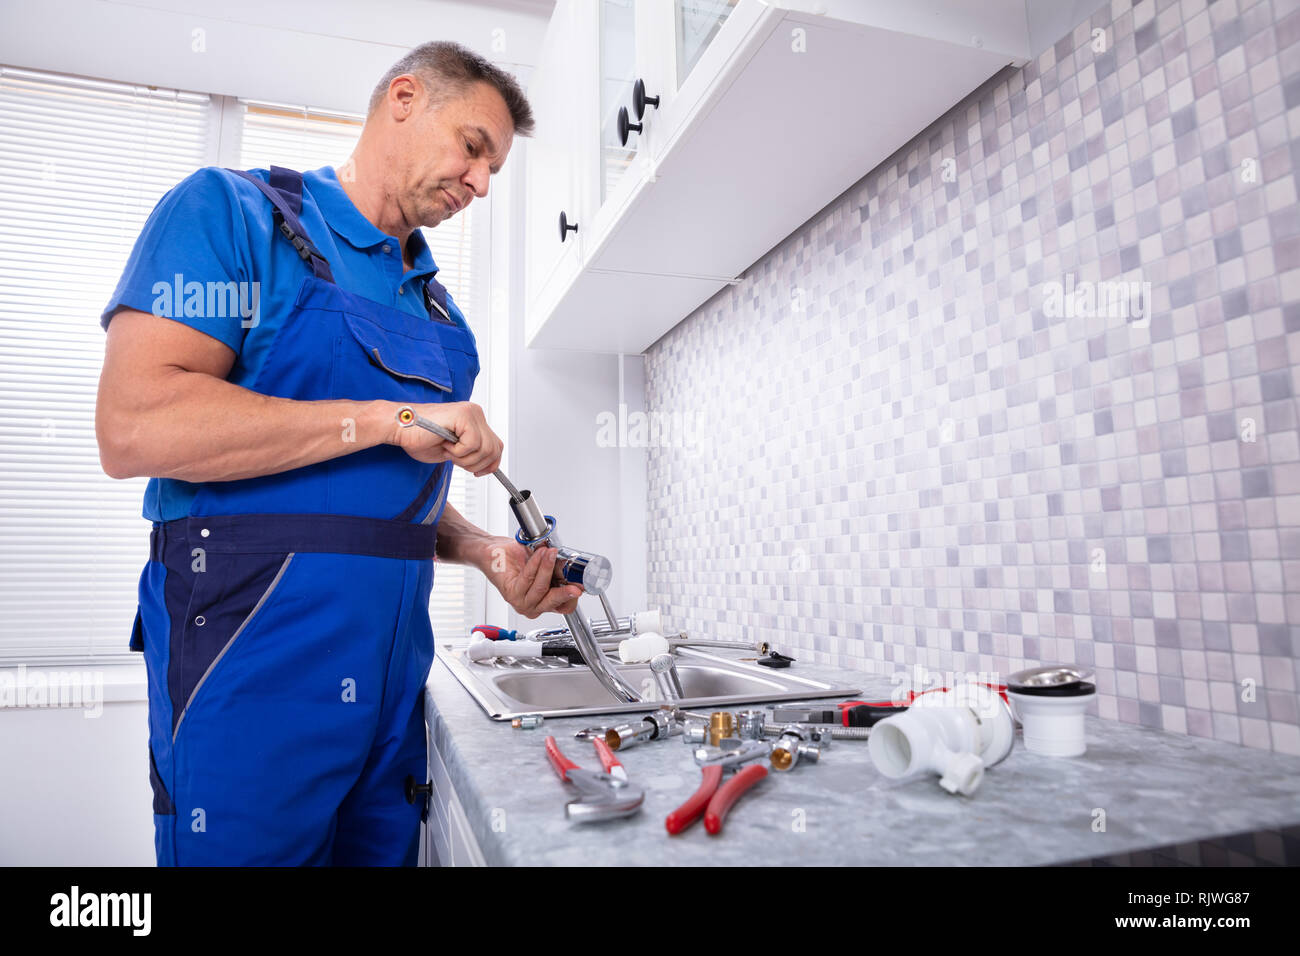 Side View Of A Plumber Fixing Water Tap In Kitchen Stock Photo